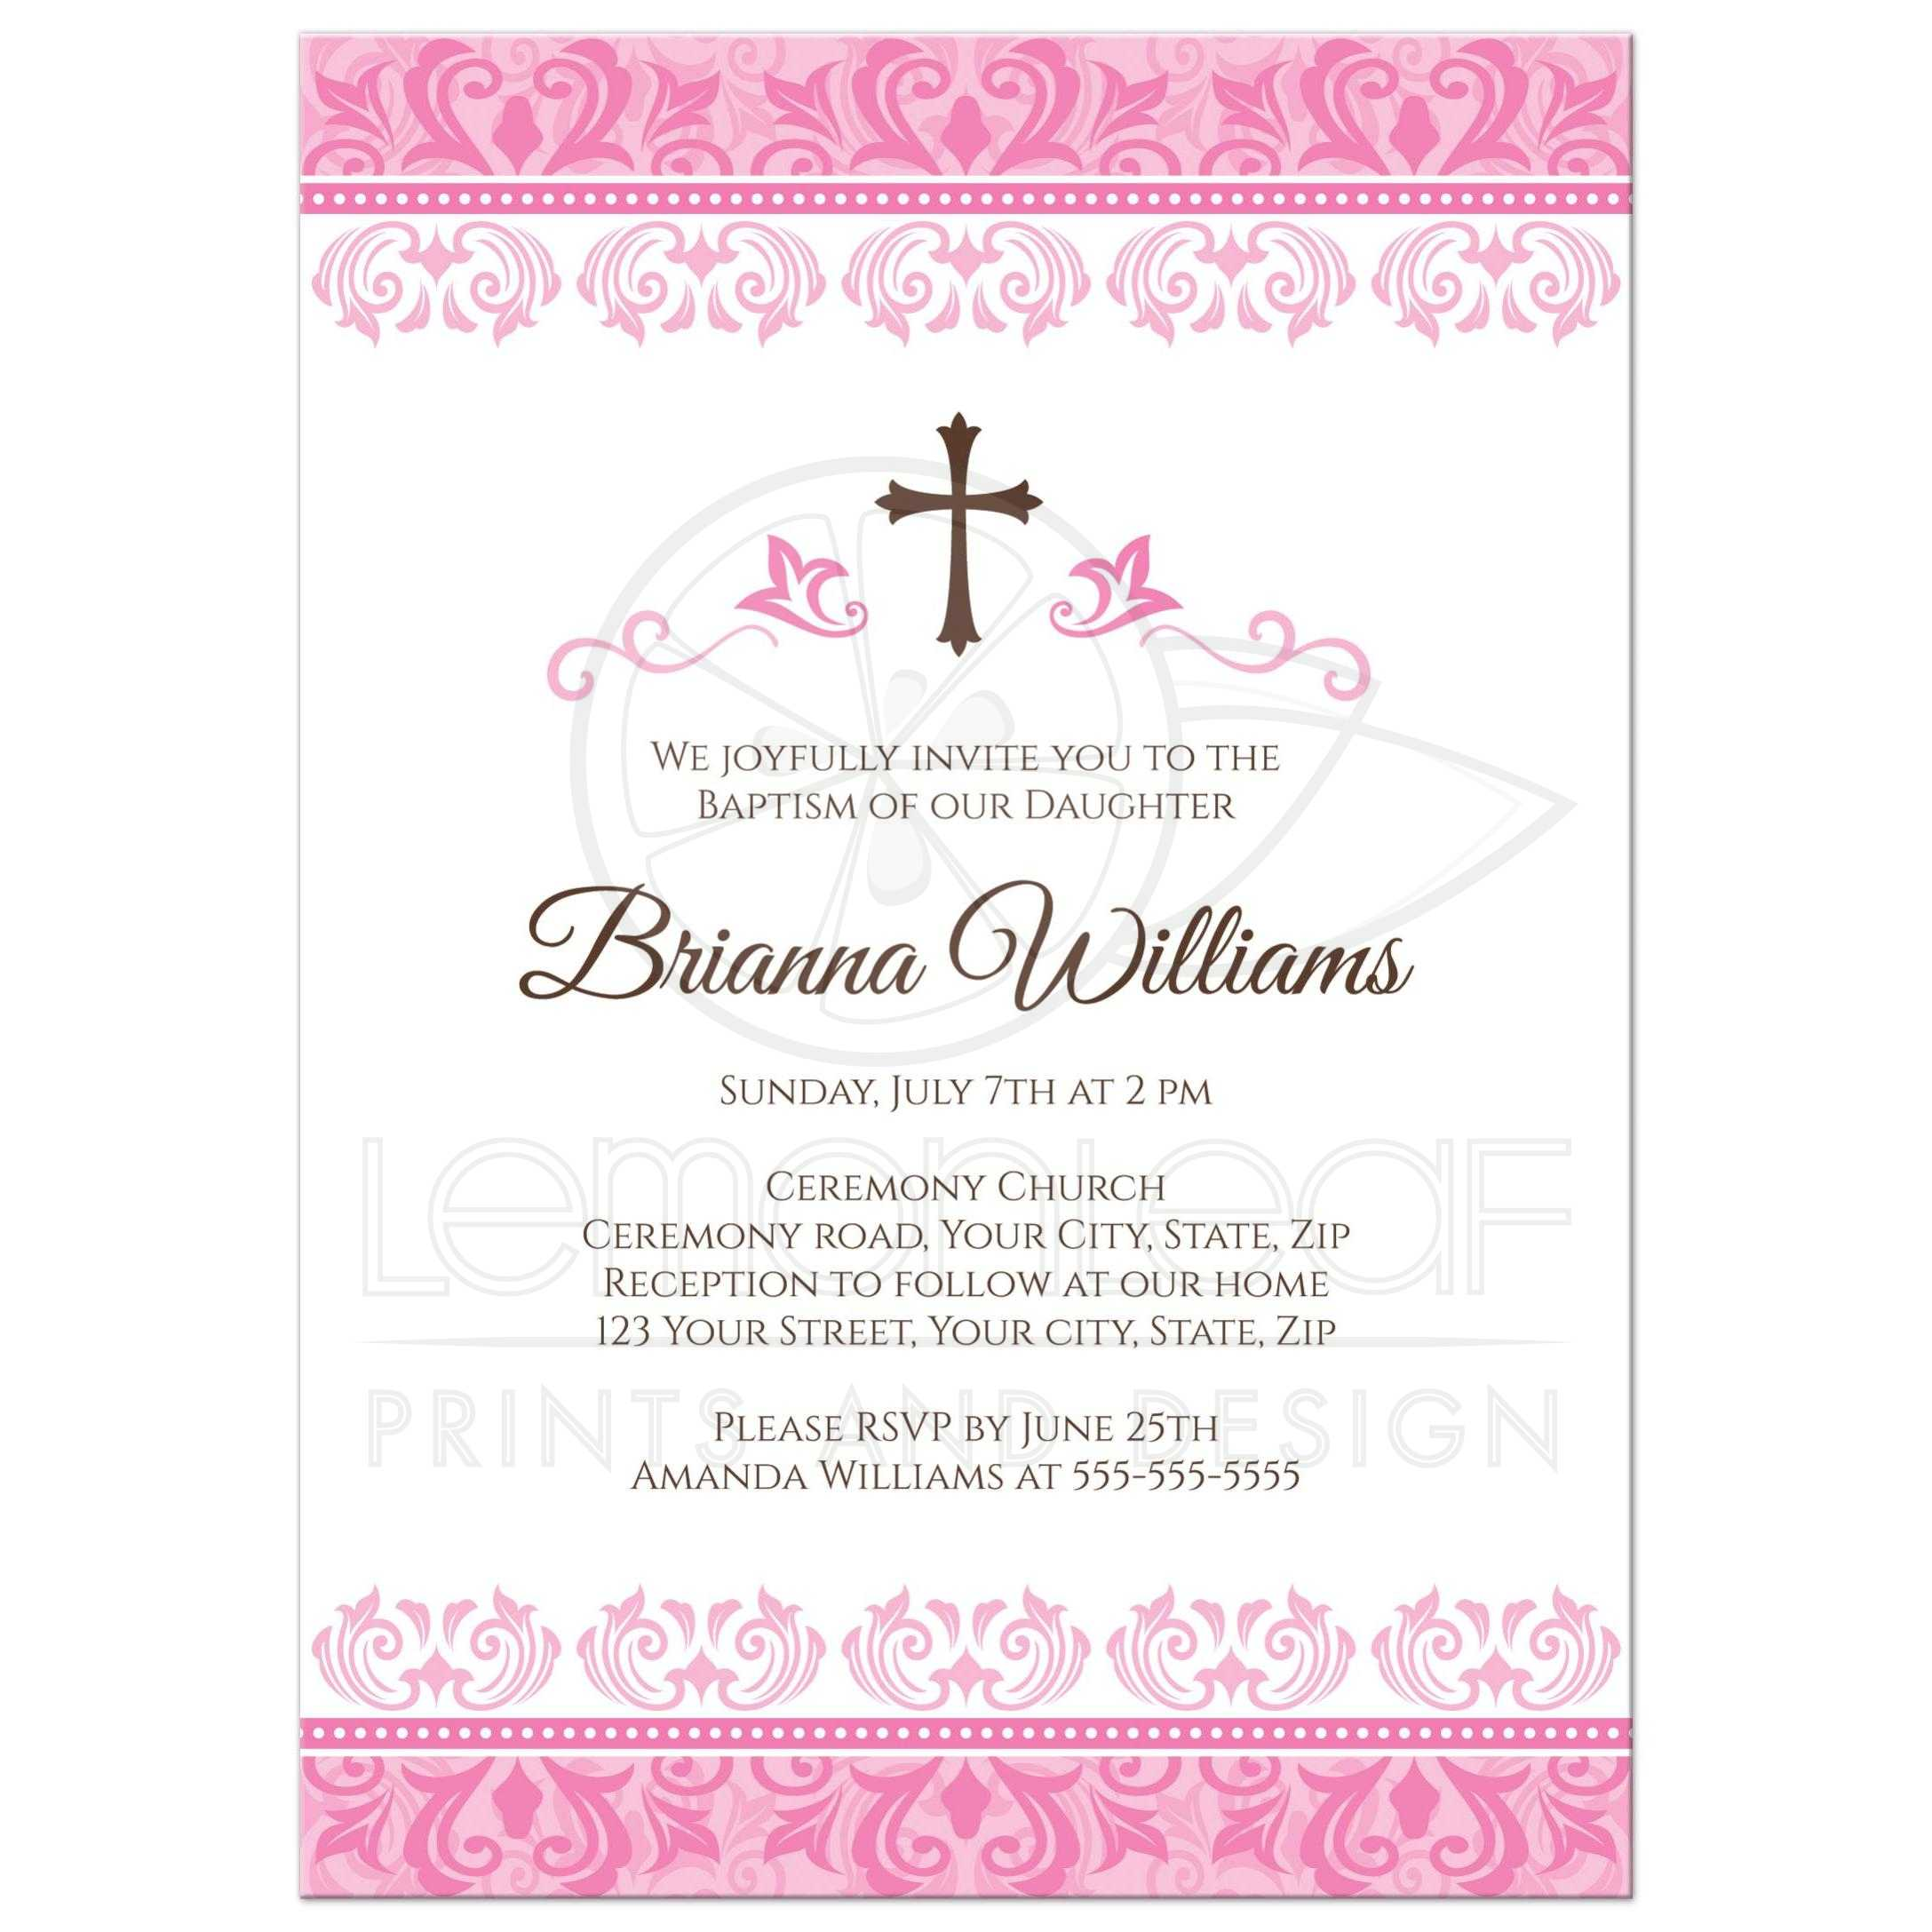 Ornate Pink Damask Borders Baptism Christening Invitation For Girls